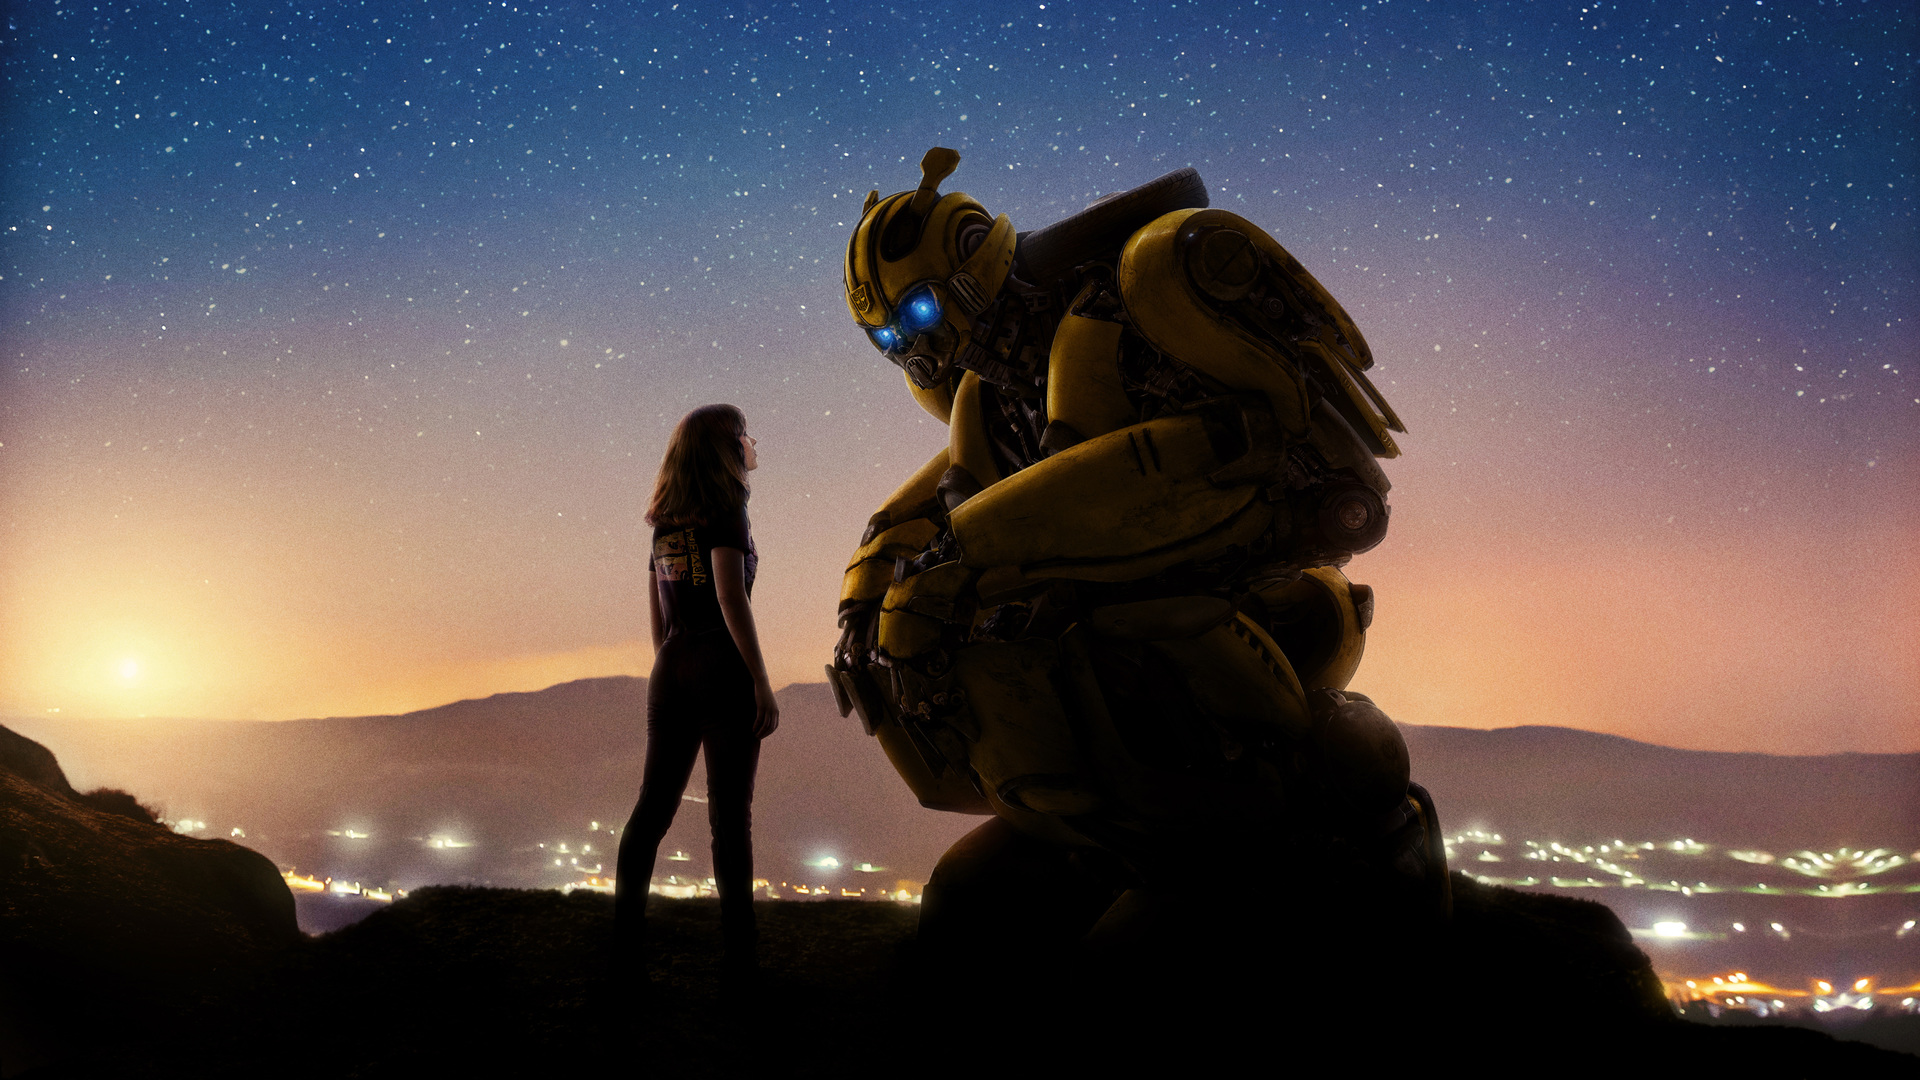 bumblebee-movie-2018-cool-new-poster-5k-0c-1920x1080.jpg